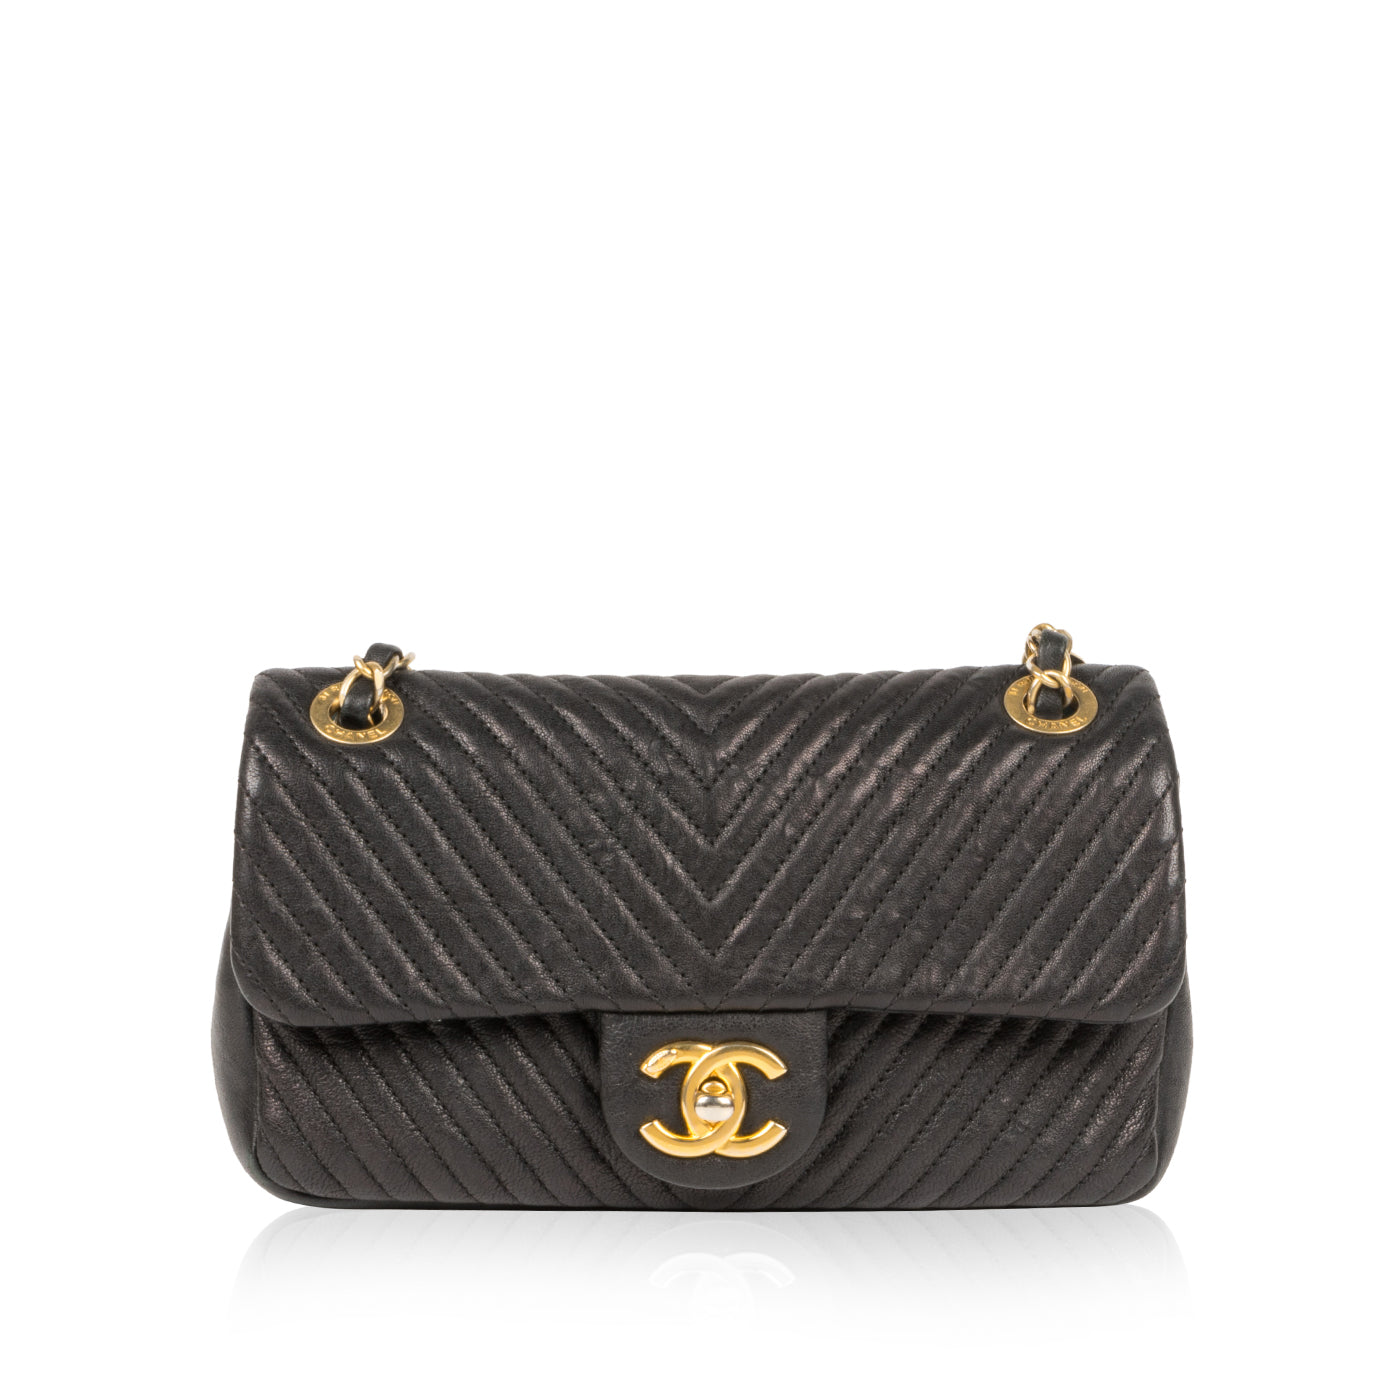 ffba8d9b45f0bb Chanel - Chevron Single Flap Bag - Aged Gold Hardware - Pre-Loved ...